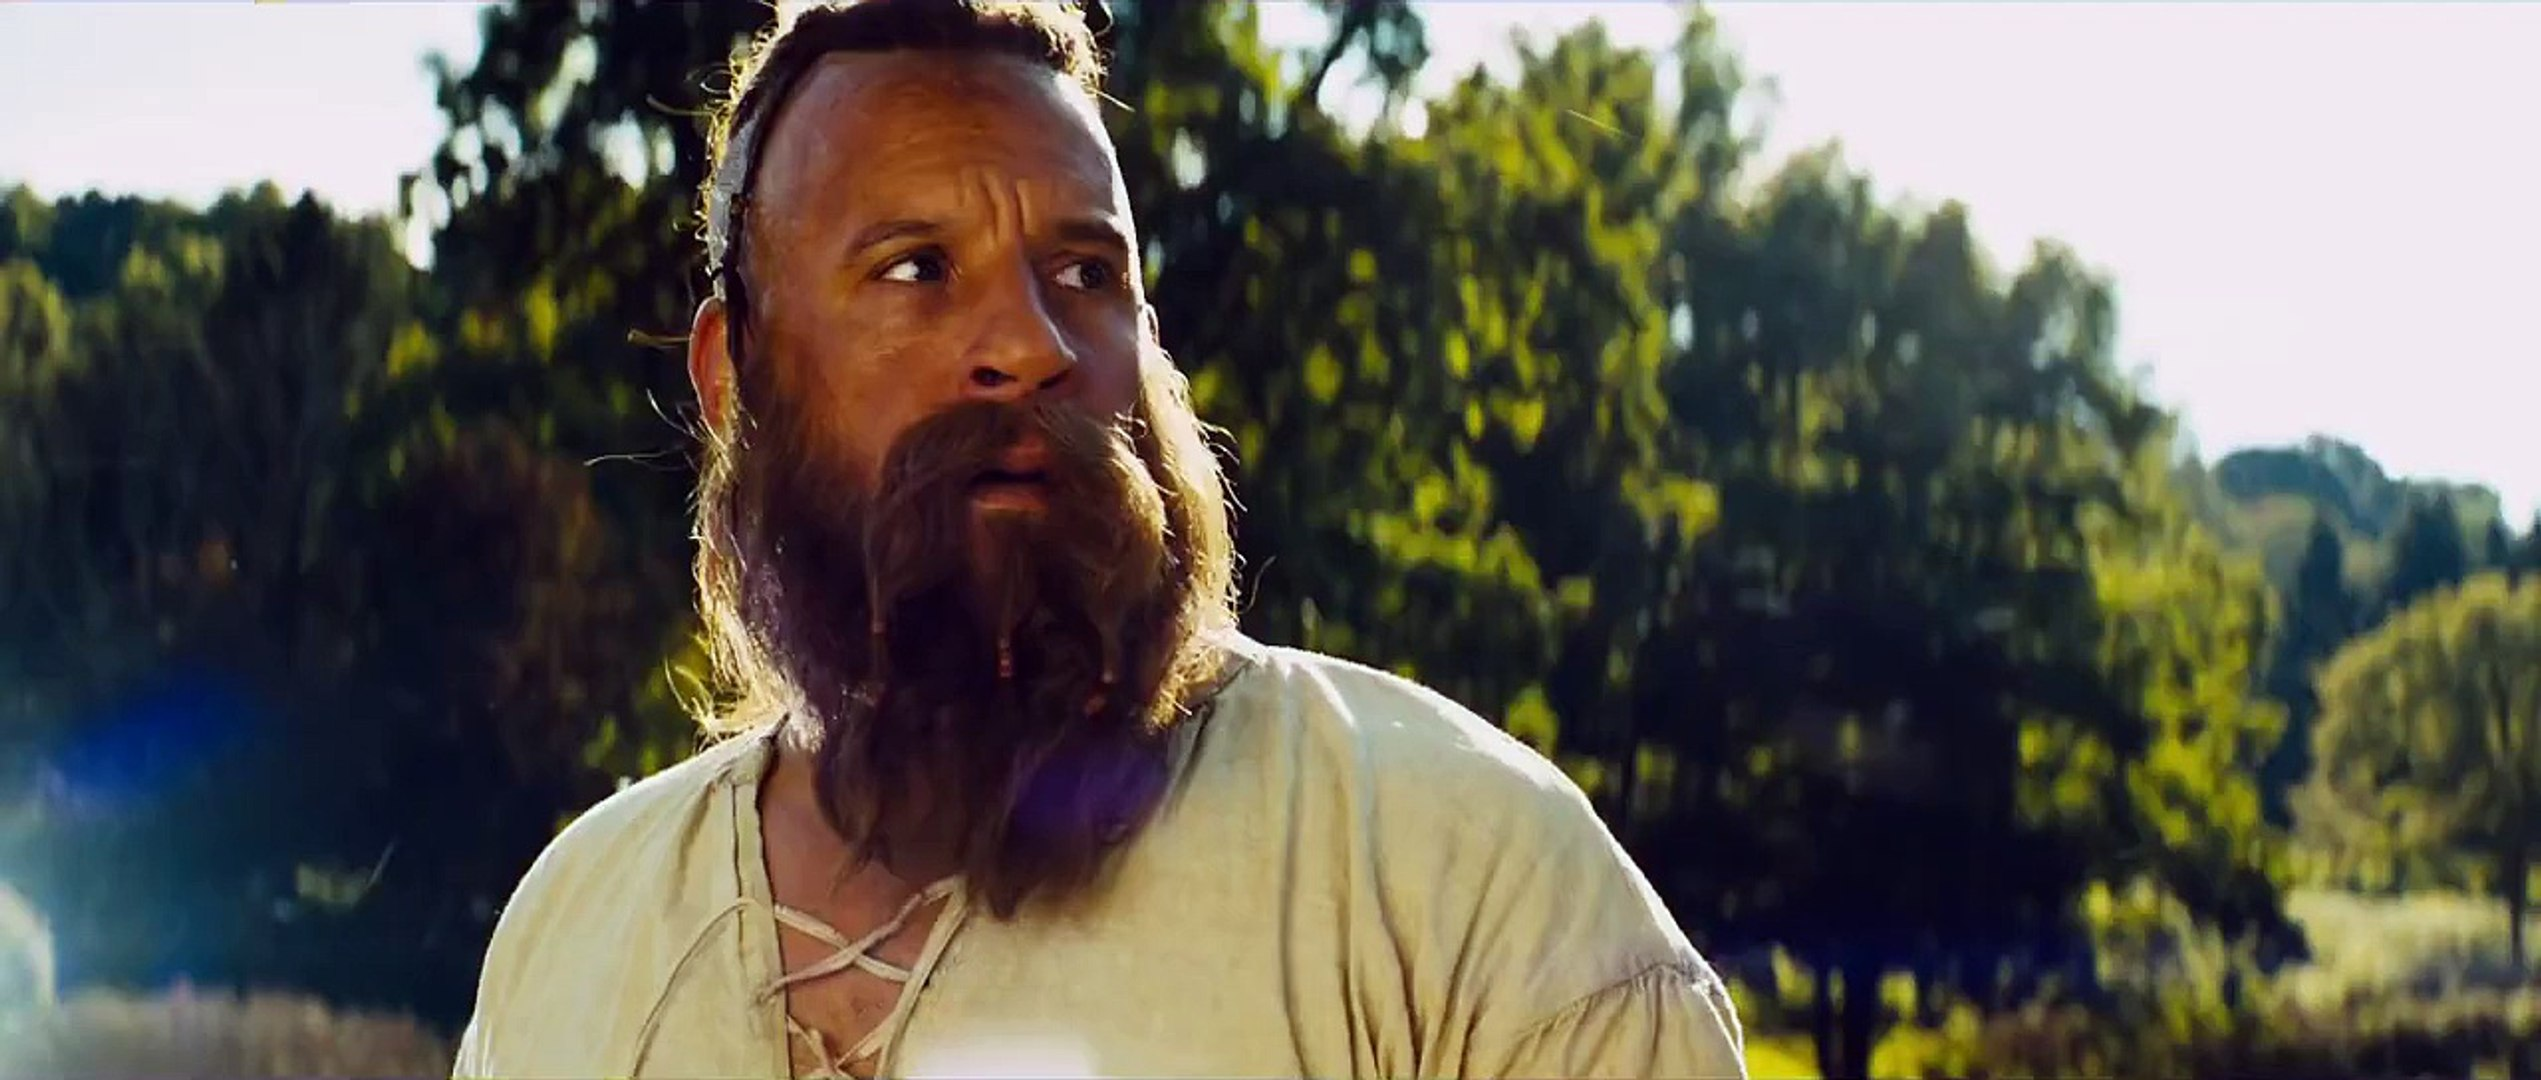 The Last Witch Hunter Official Trailer #1 (2015) - Vin Diesel, Michael Caine Fantasy Action Movie H